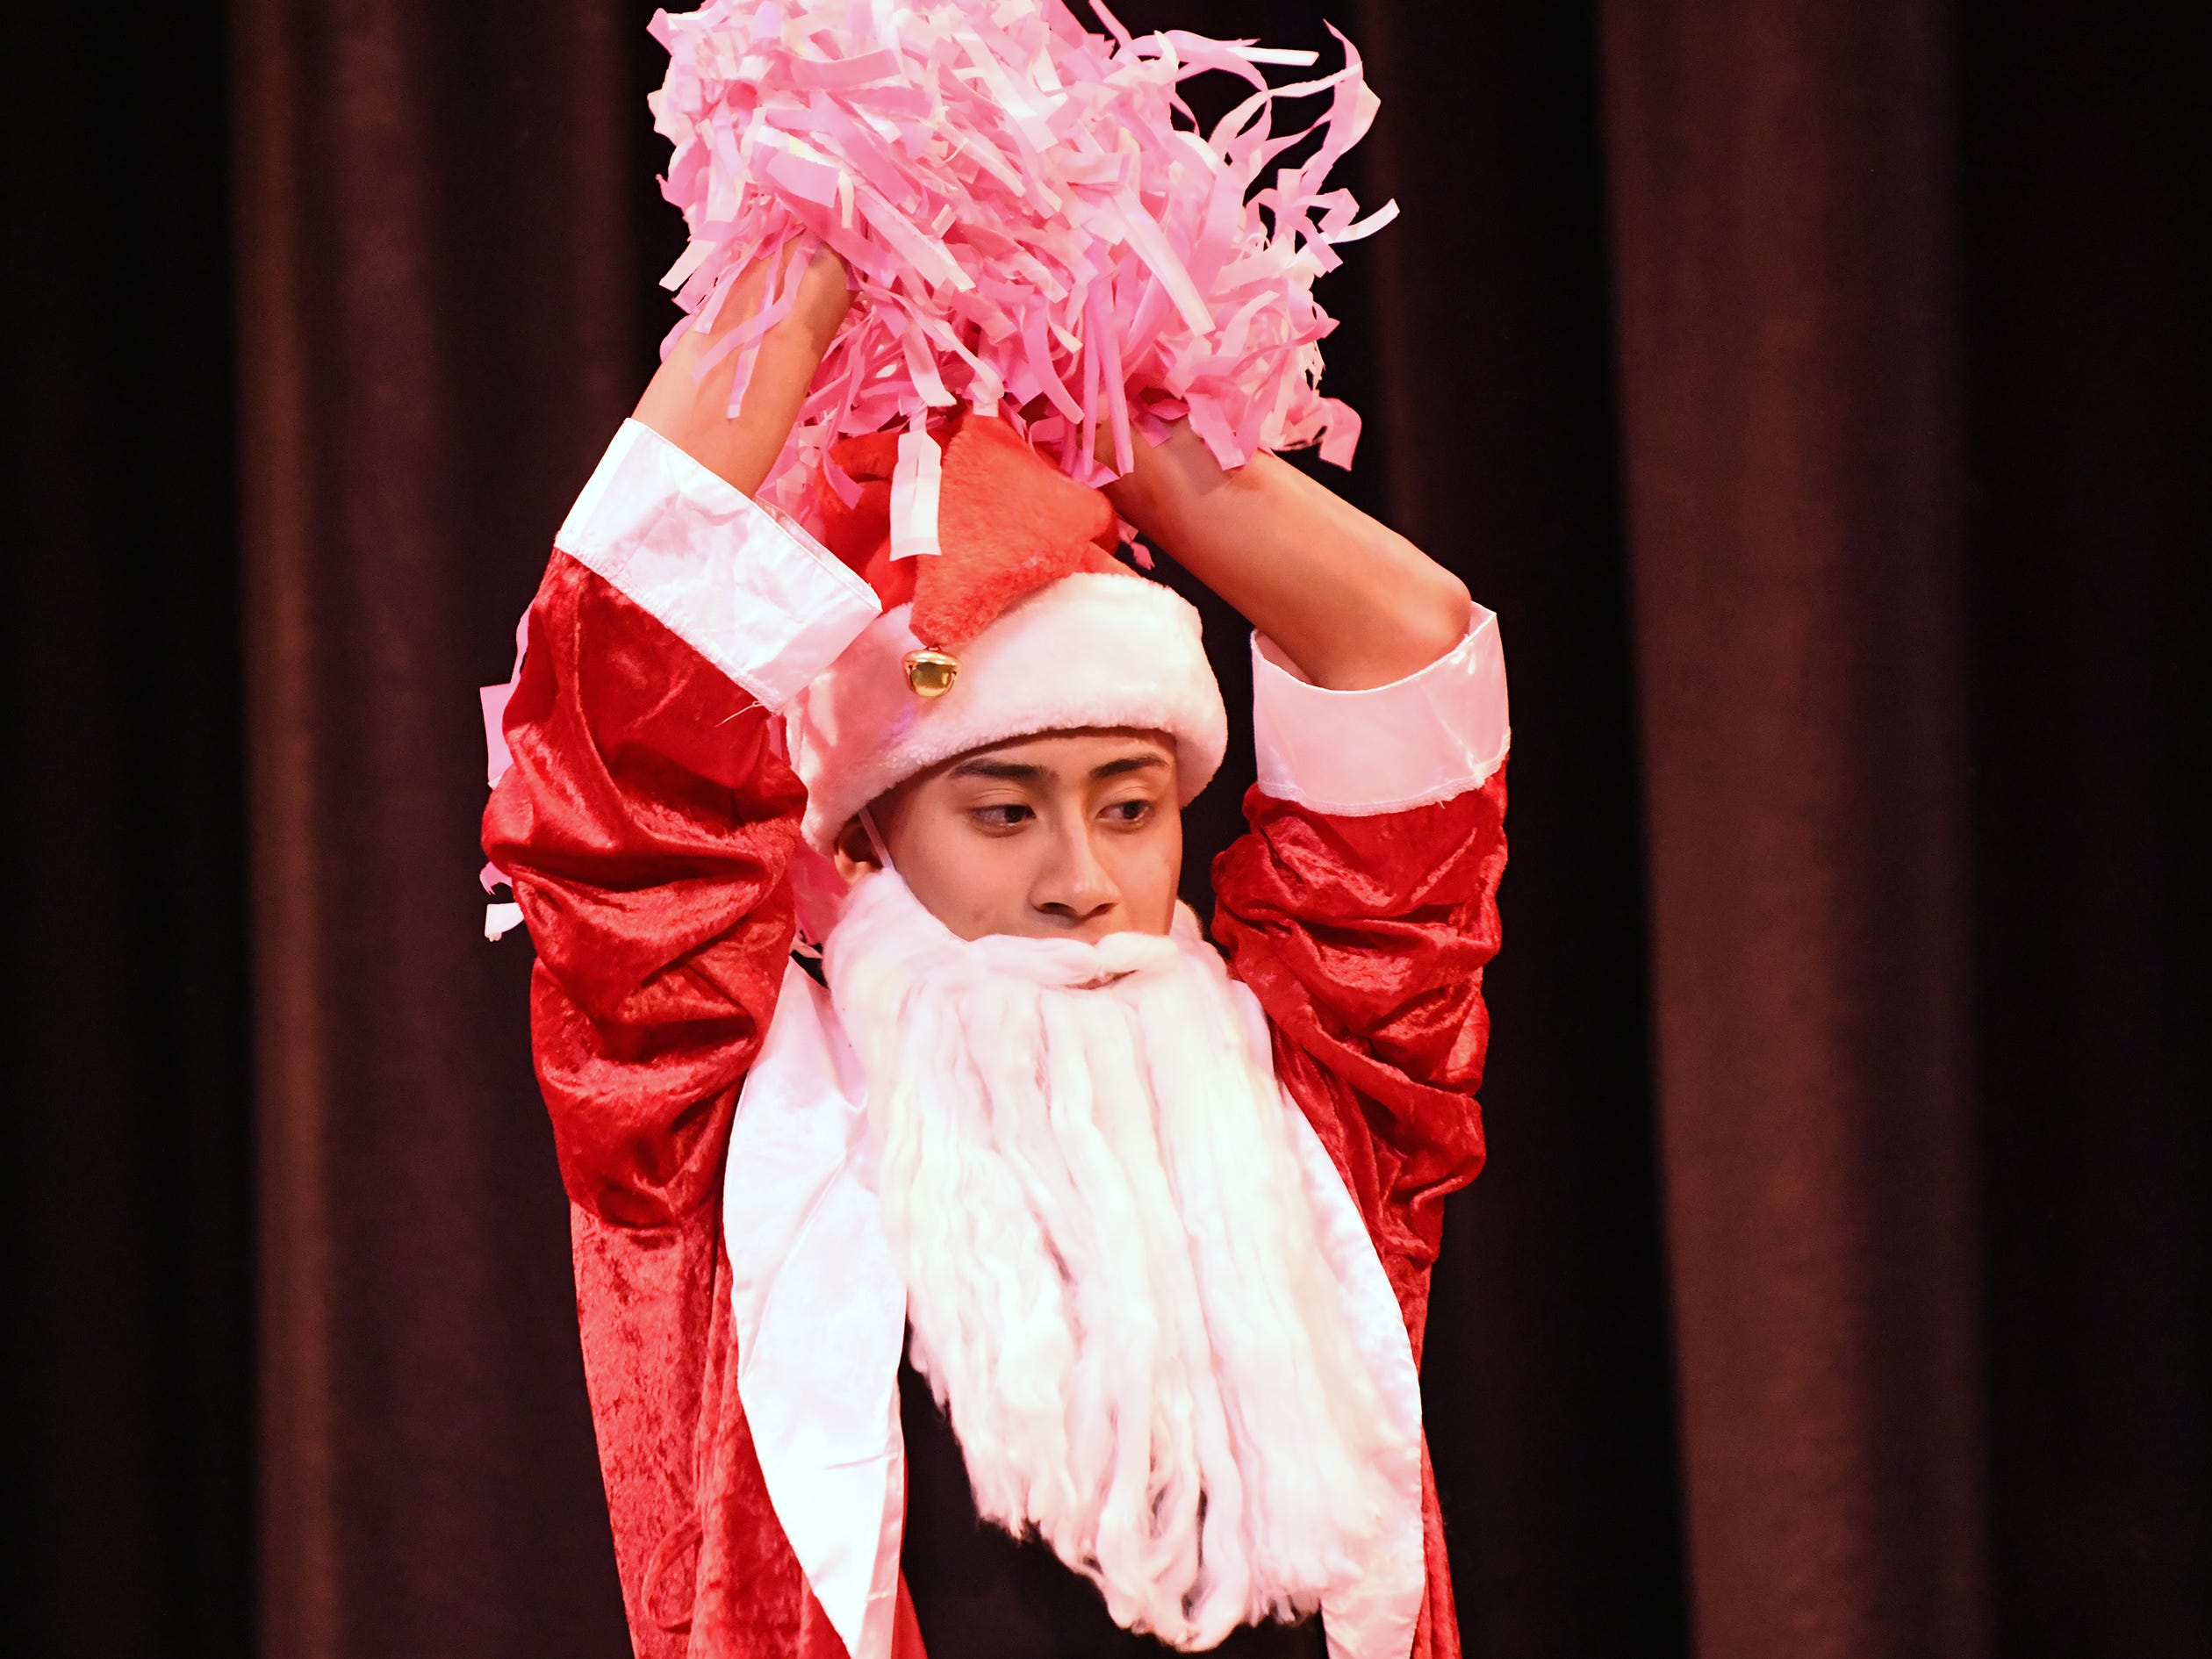 Maykon Hernandez performs during the talent portion of Mr. Vineland 2019 at Vineland High School on Thursday, January 10.